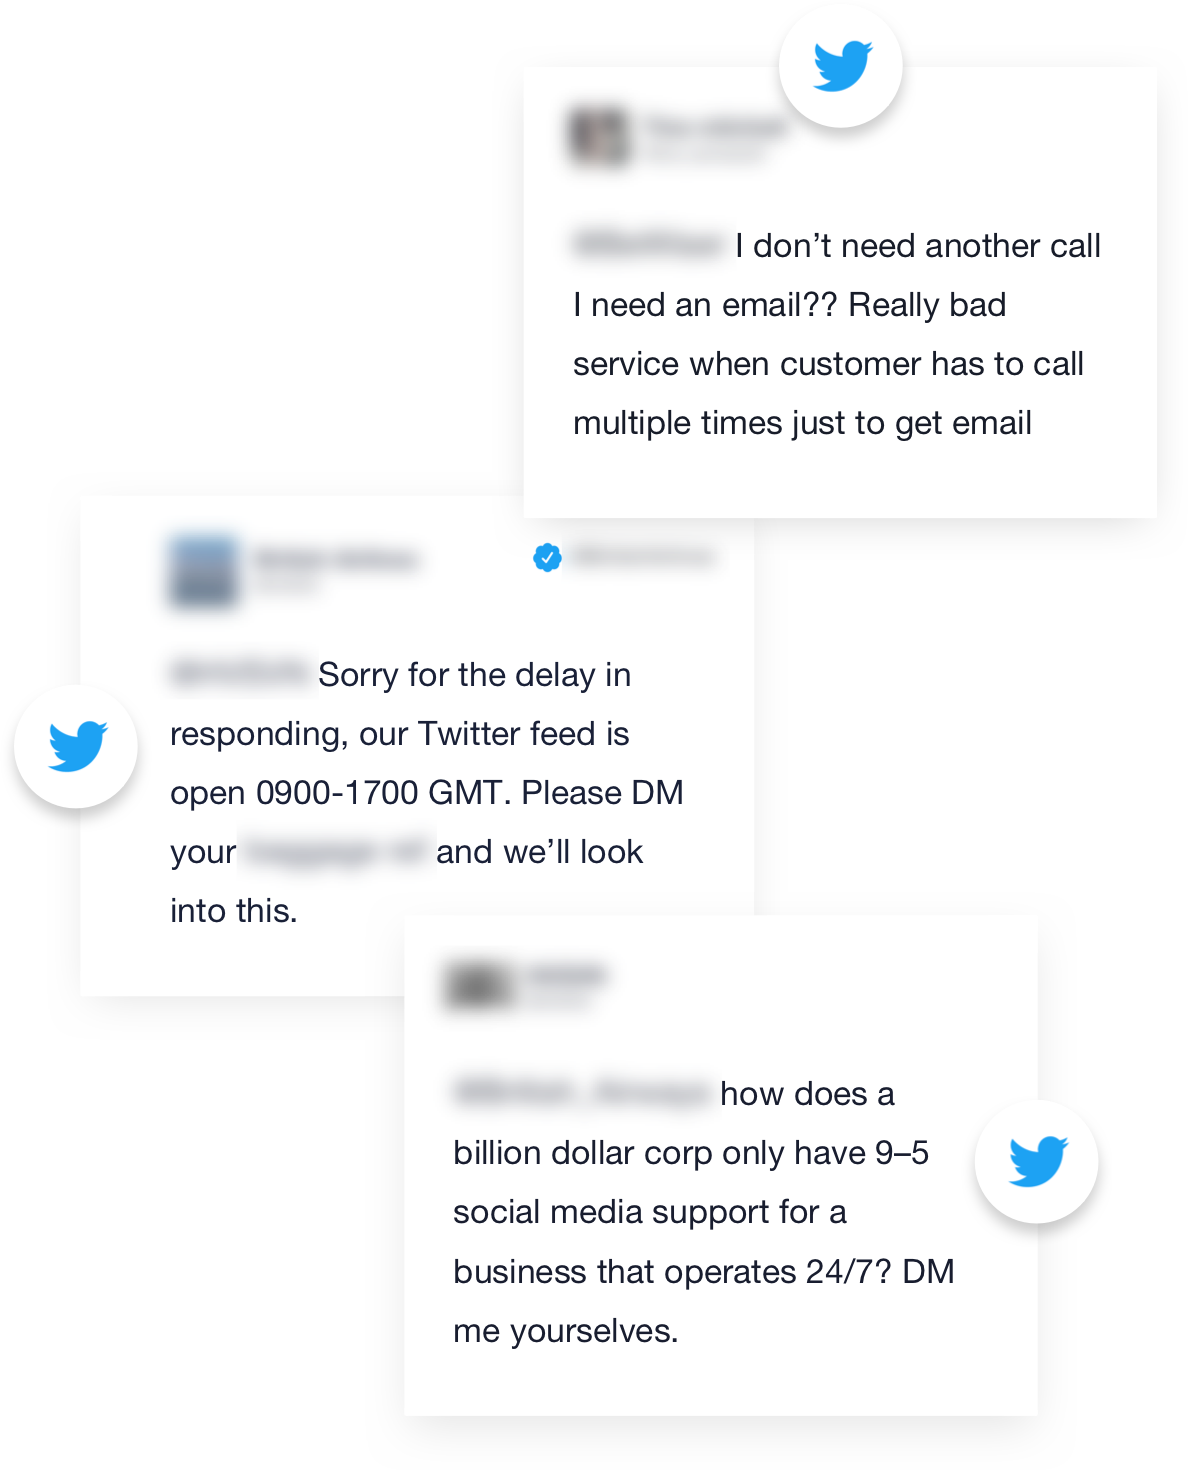 This image is of a Twitter discussion between a customer and a company. It didn't go very well. Customer: I don't need another call I need and email?? Really bad service when customer has to call multiple times just to get an email. Company: Sorry for the delay in responding, our Twitter feed is open 0900-1700 GMT. Please DM your [blank] and we'll look into this. Customer: how does a billion dollar corp only have 9-5 social media support for a business that operates 24/7? DM me yourself.